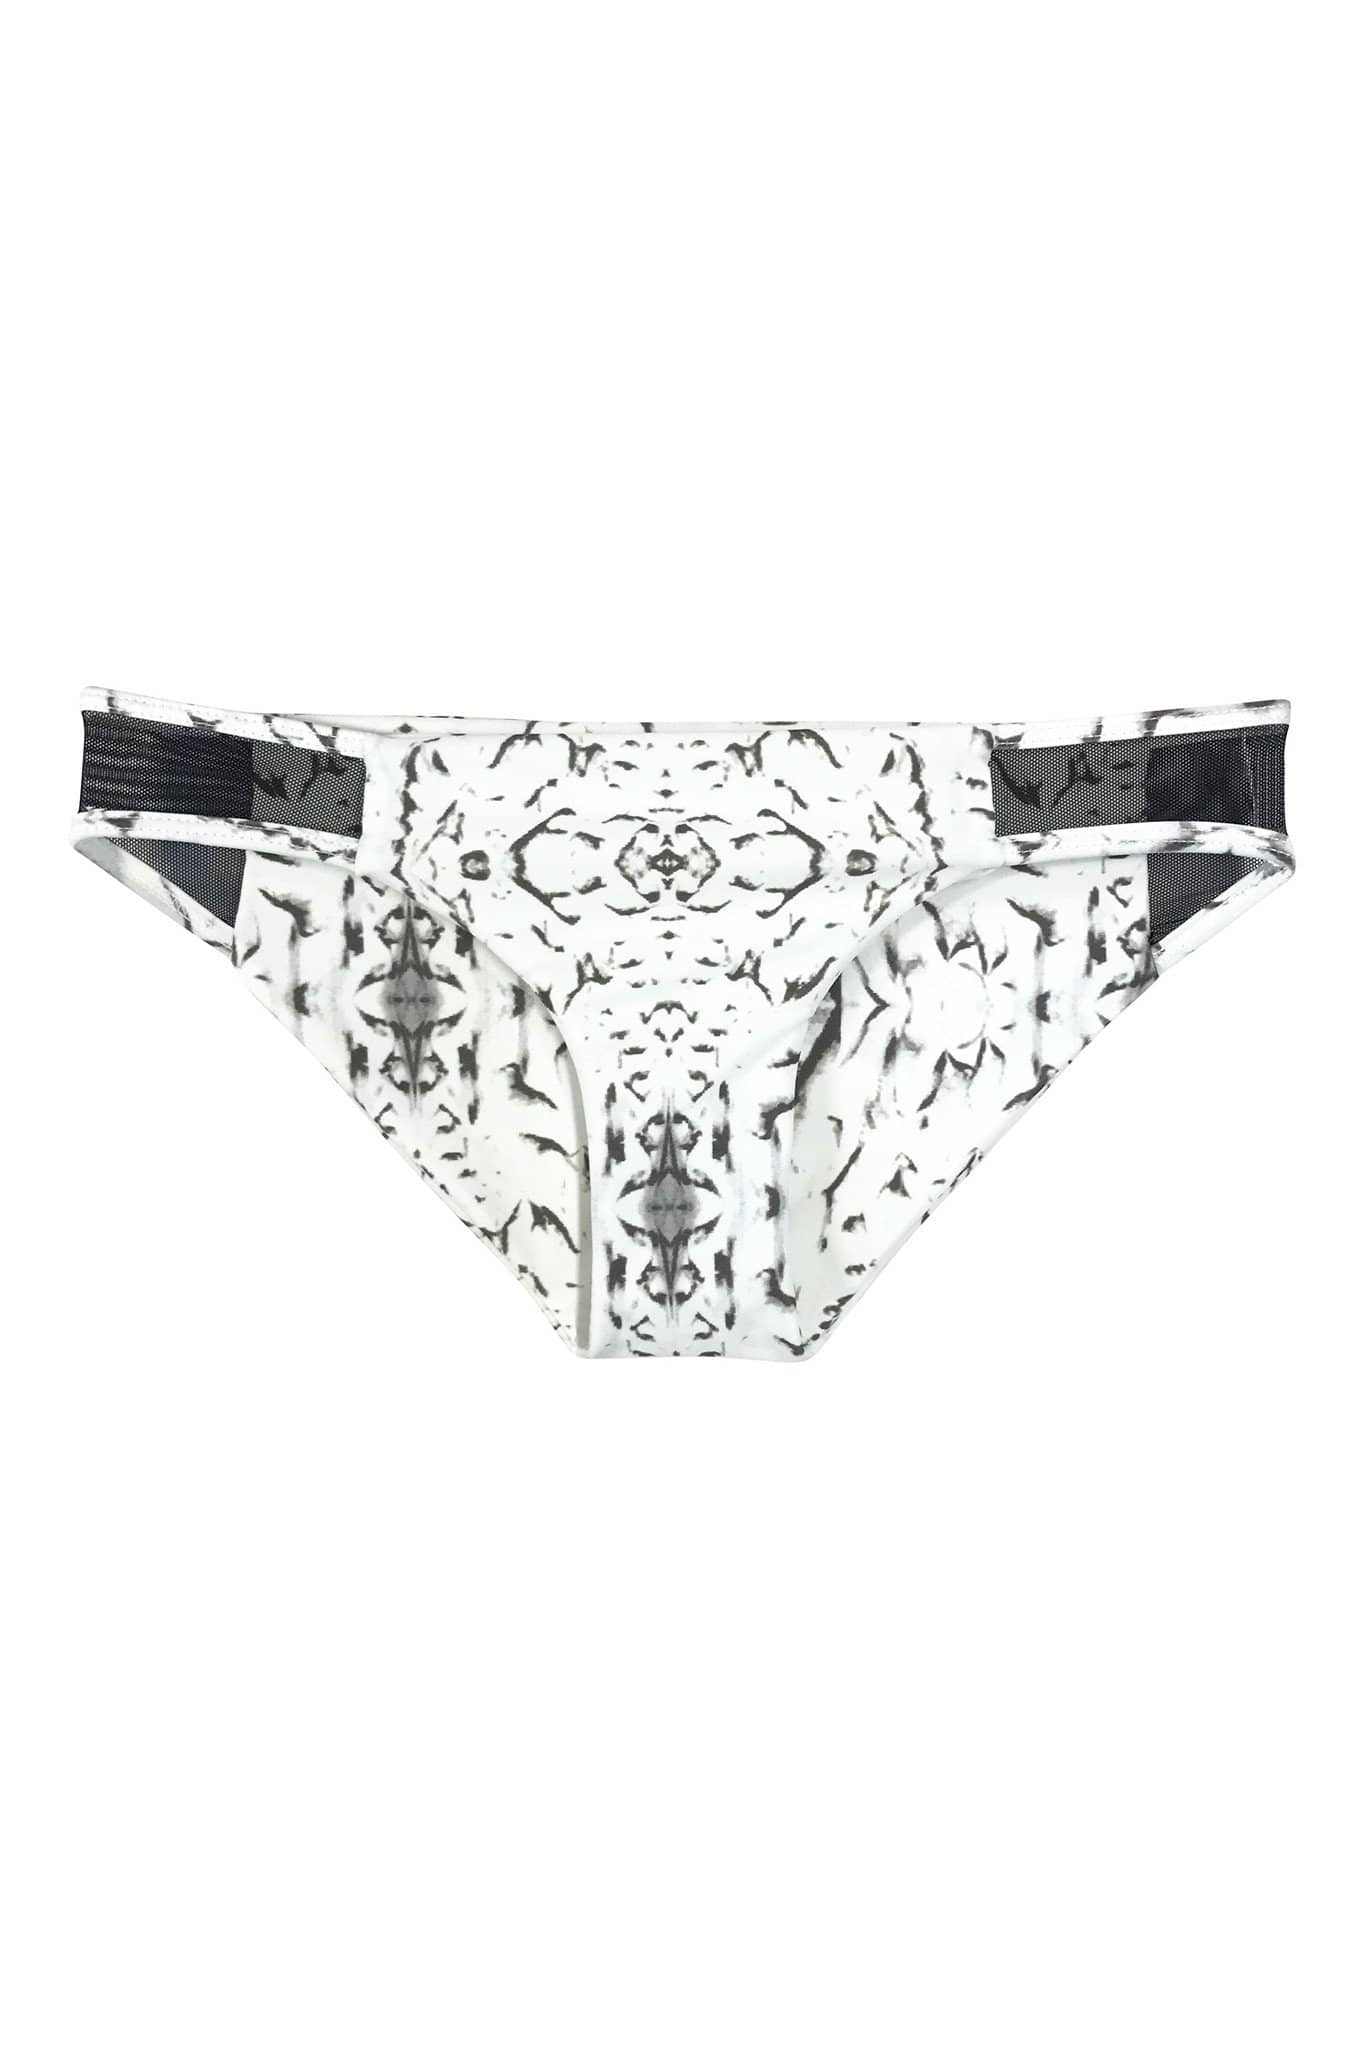 *SALE* Kaili Bottom Bone